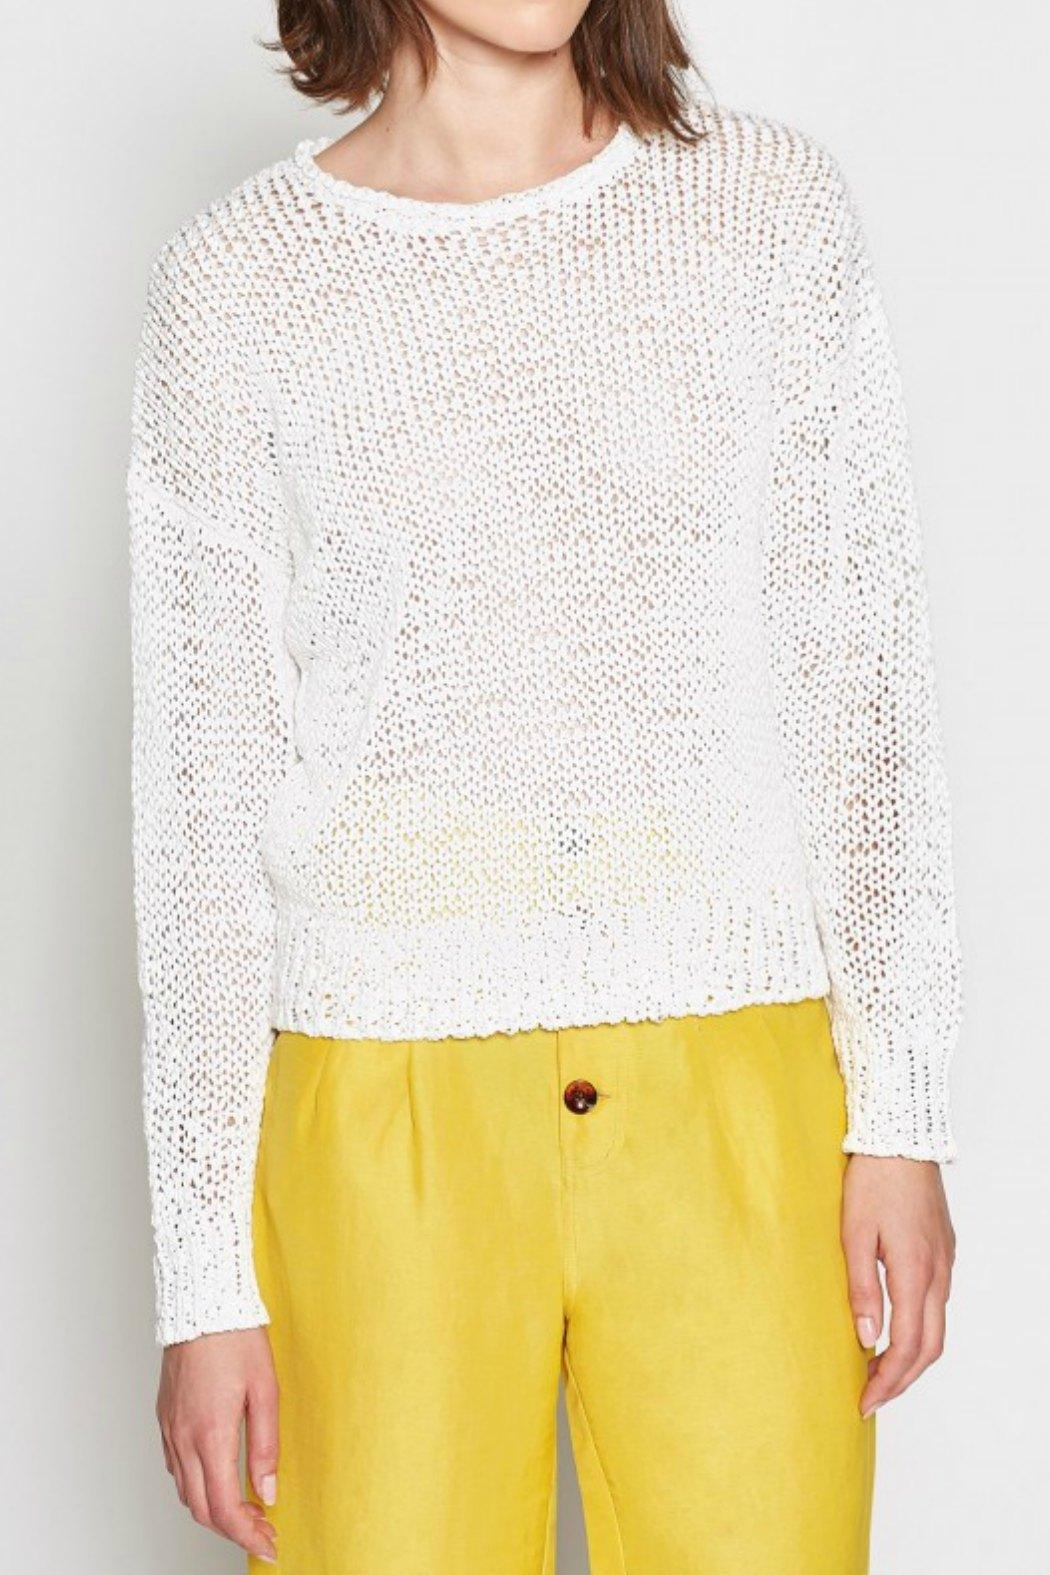 Joie Burney Summer Sweater - Side Cropped Image